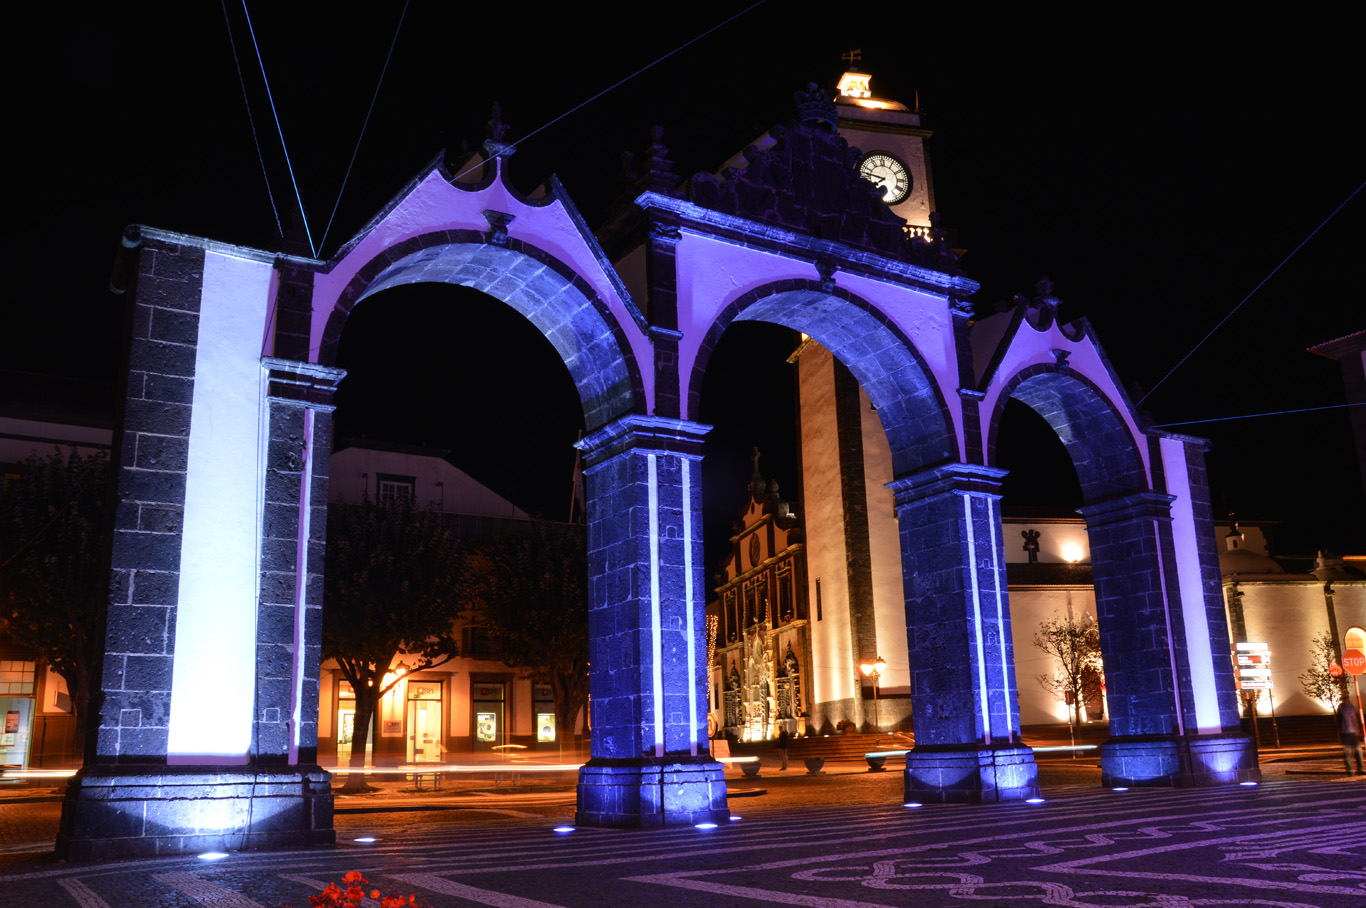 The City Gate at night